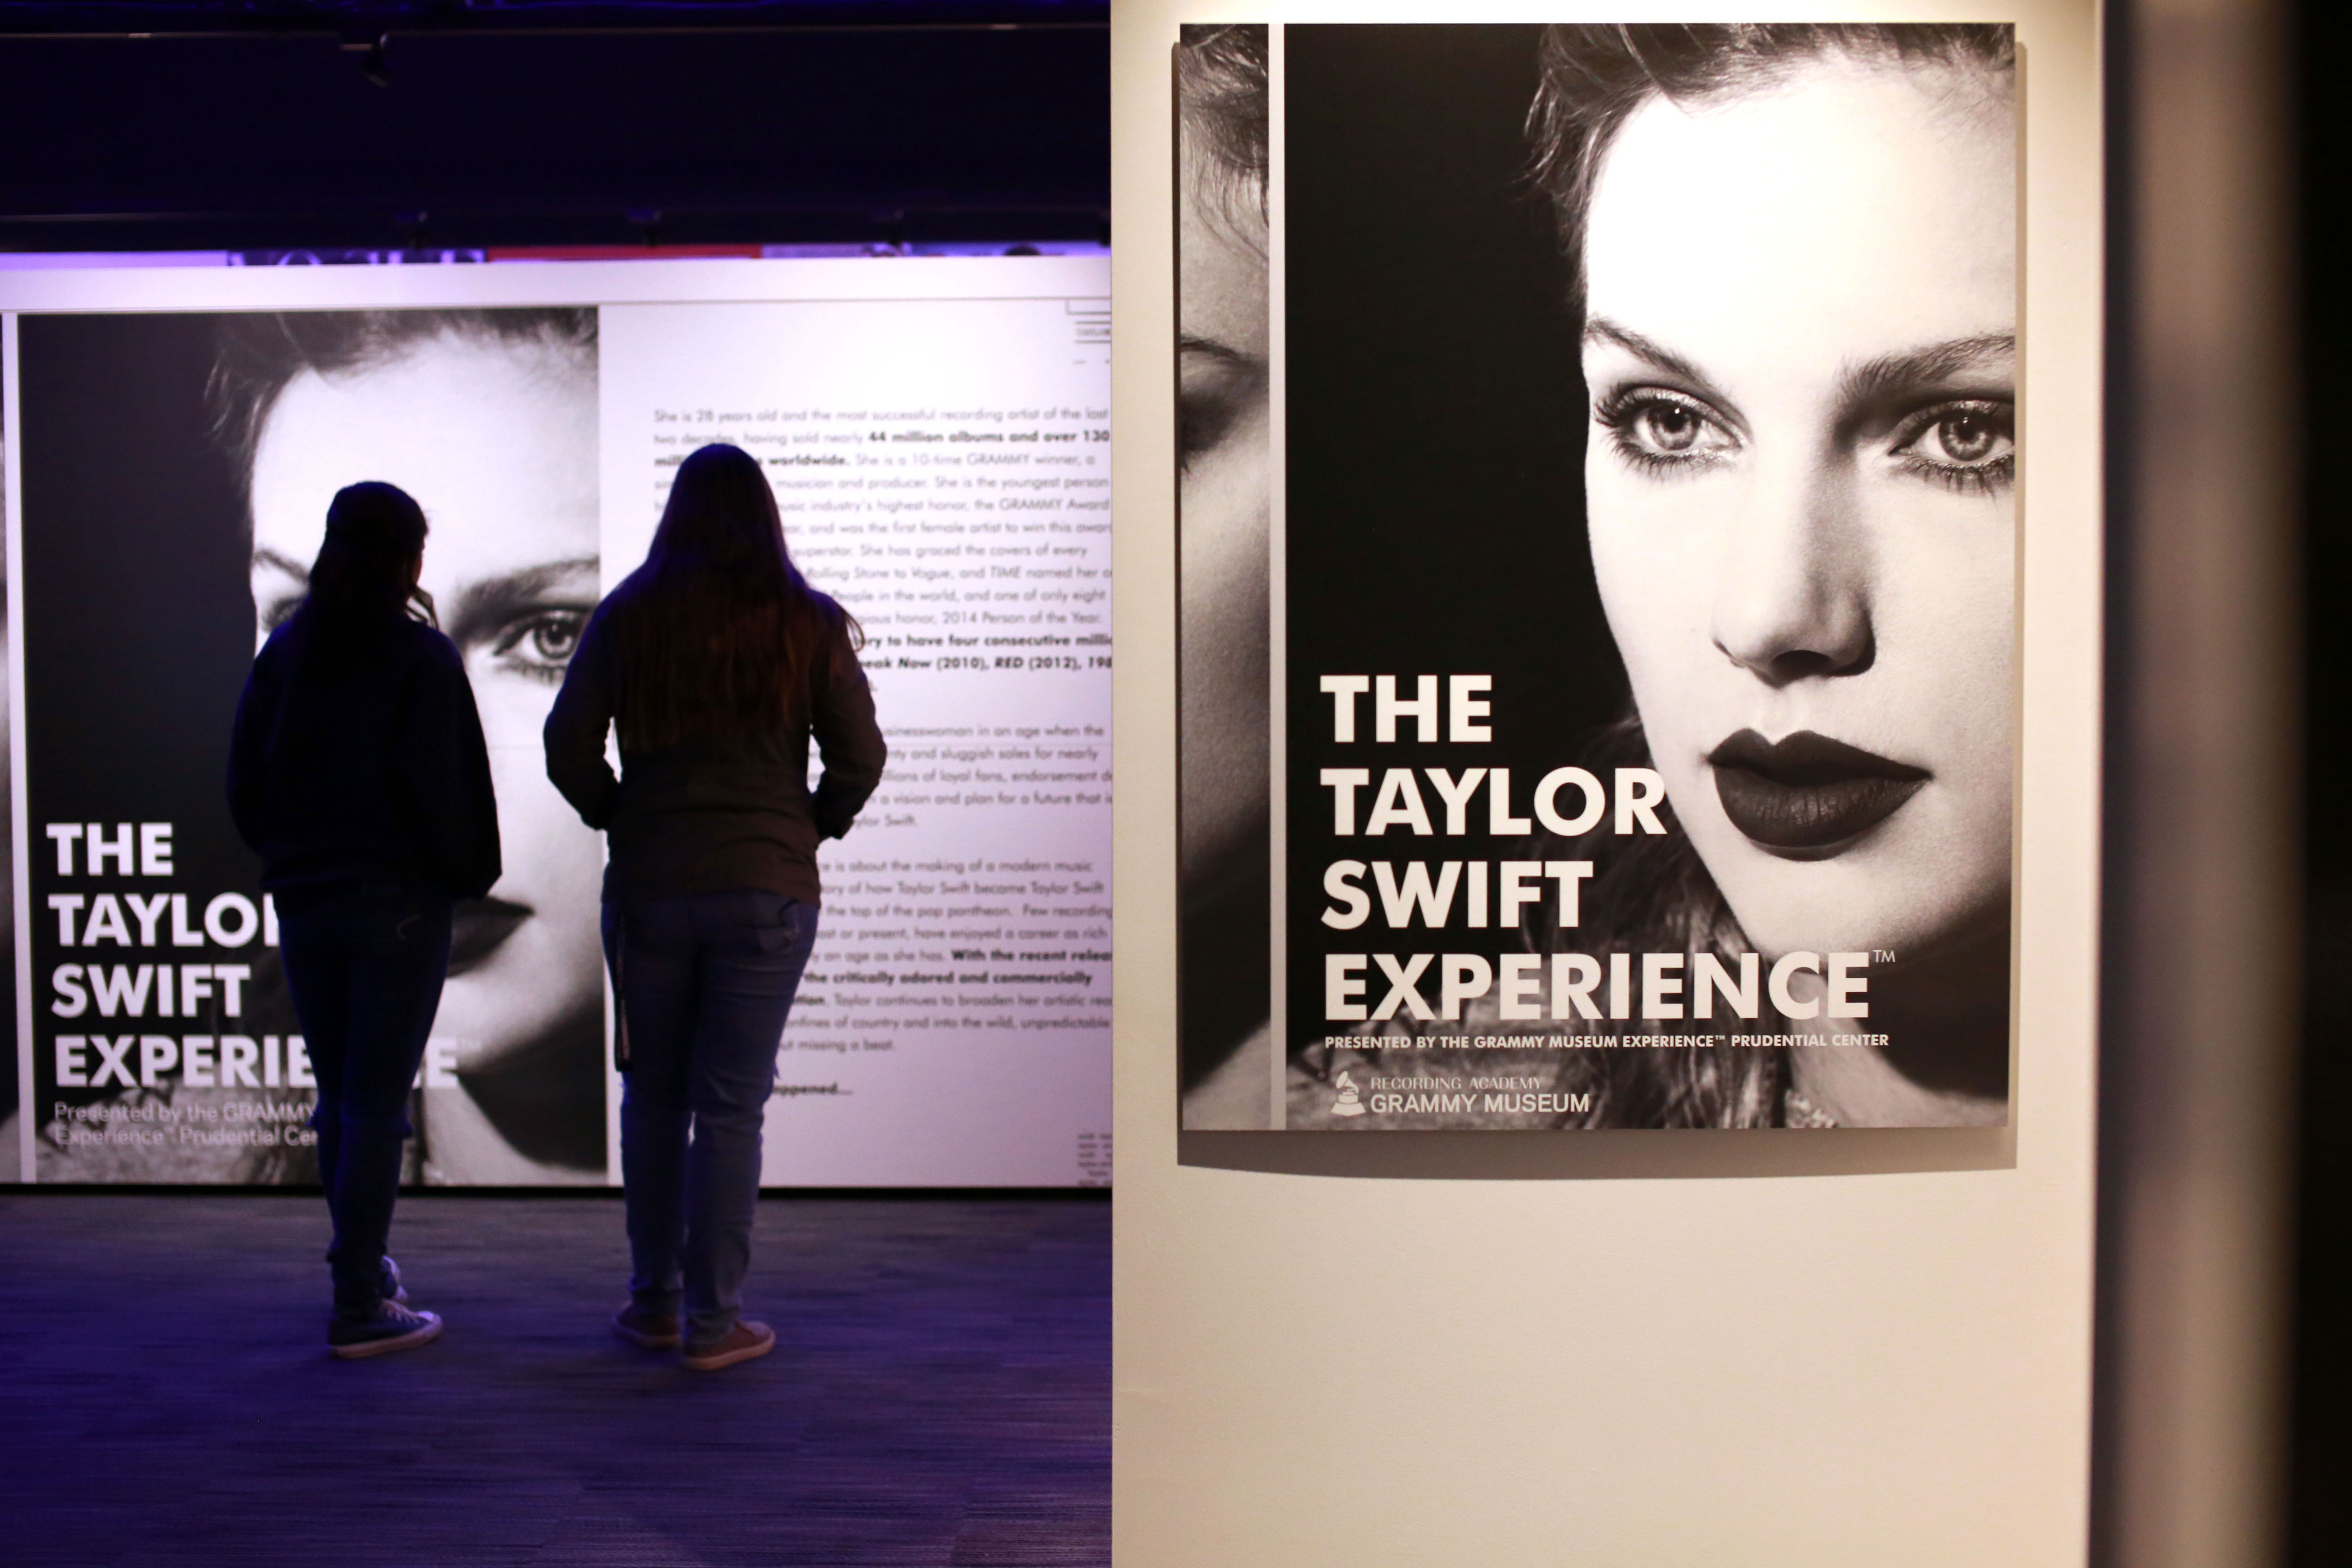 GRAMMY Museum Experience at Prudential Center's Taylor Swift Experience exhibit